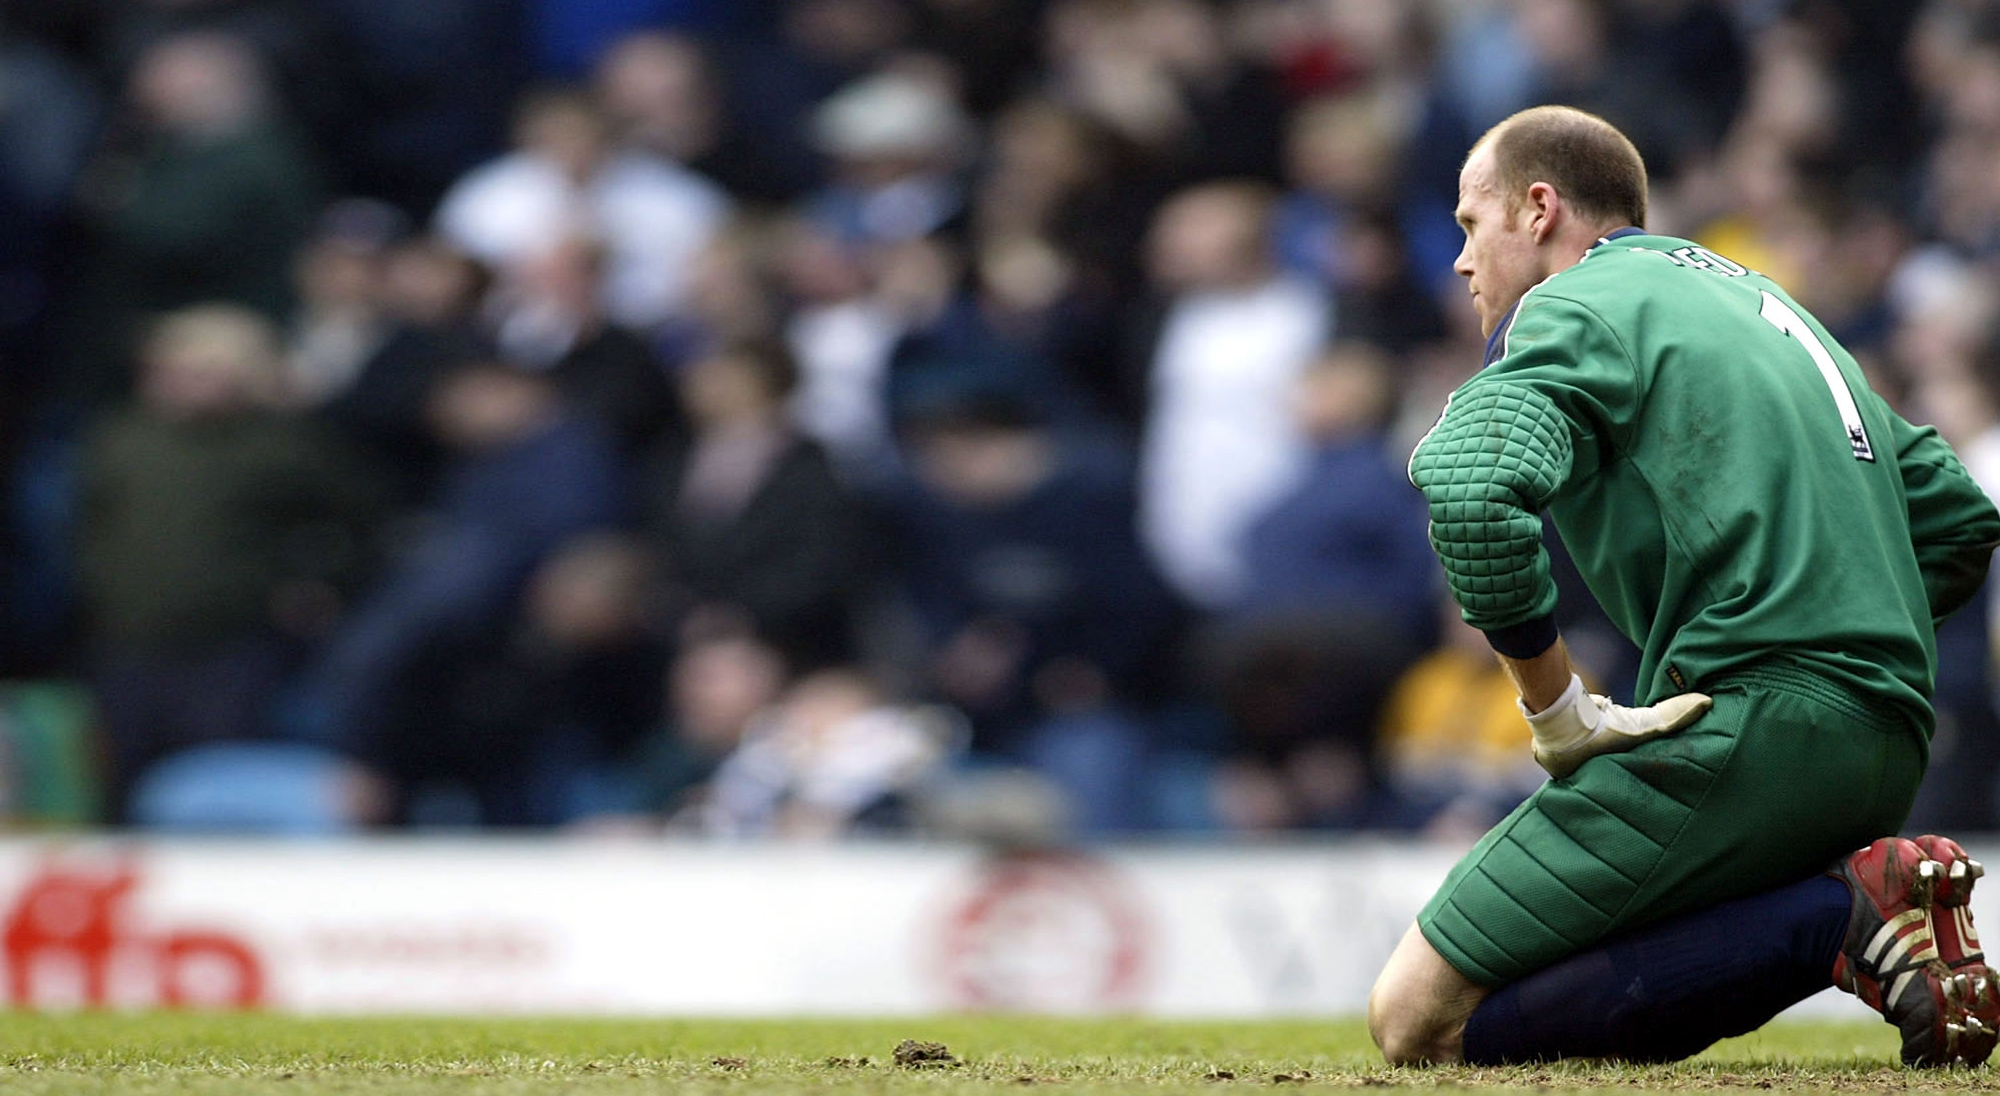 Friedel con el Blackburn Rovers